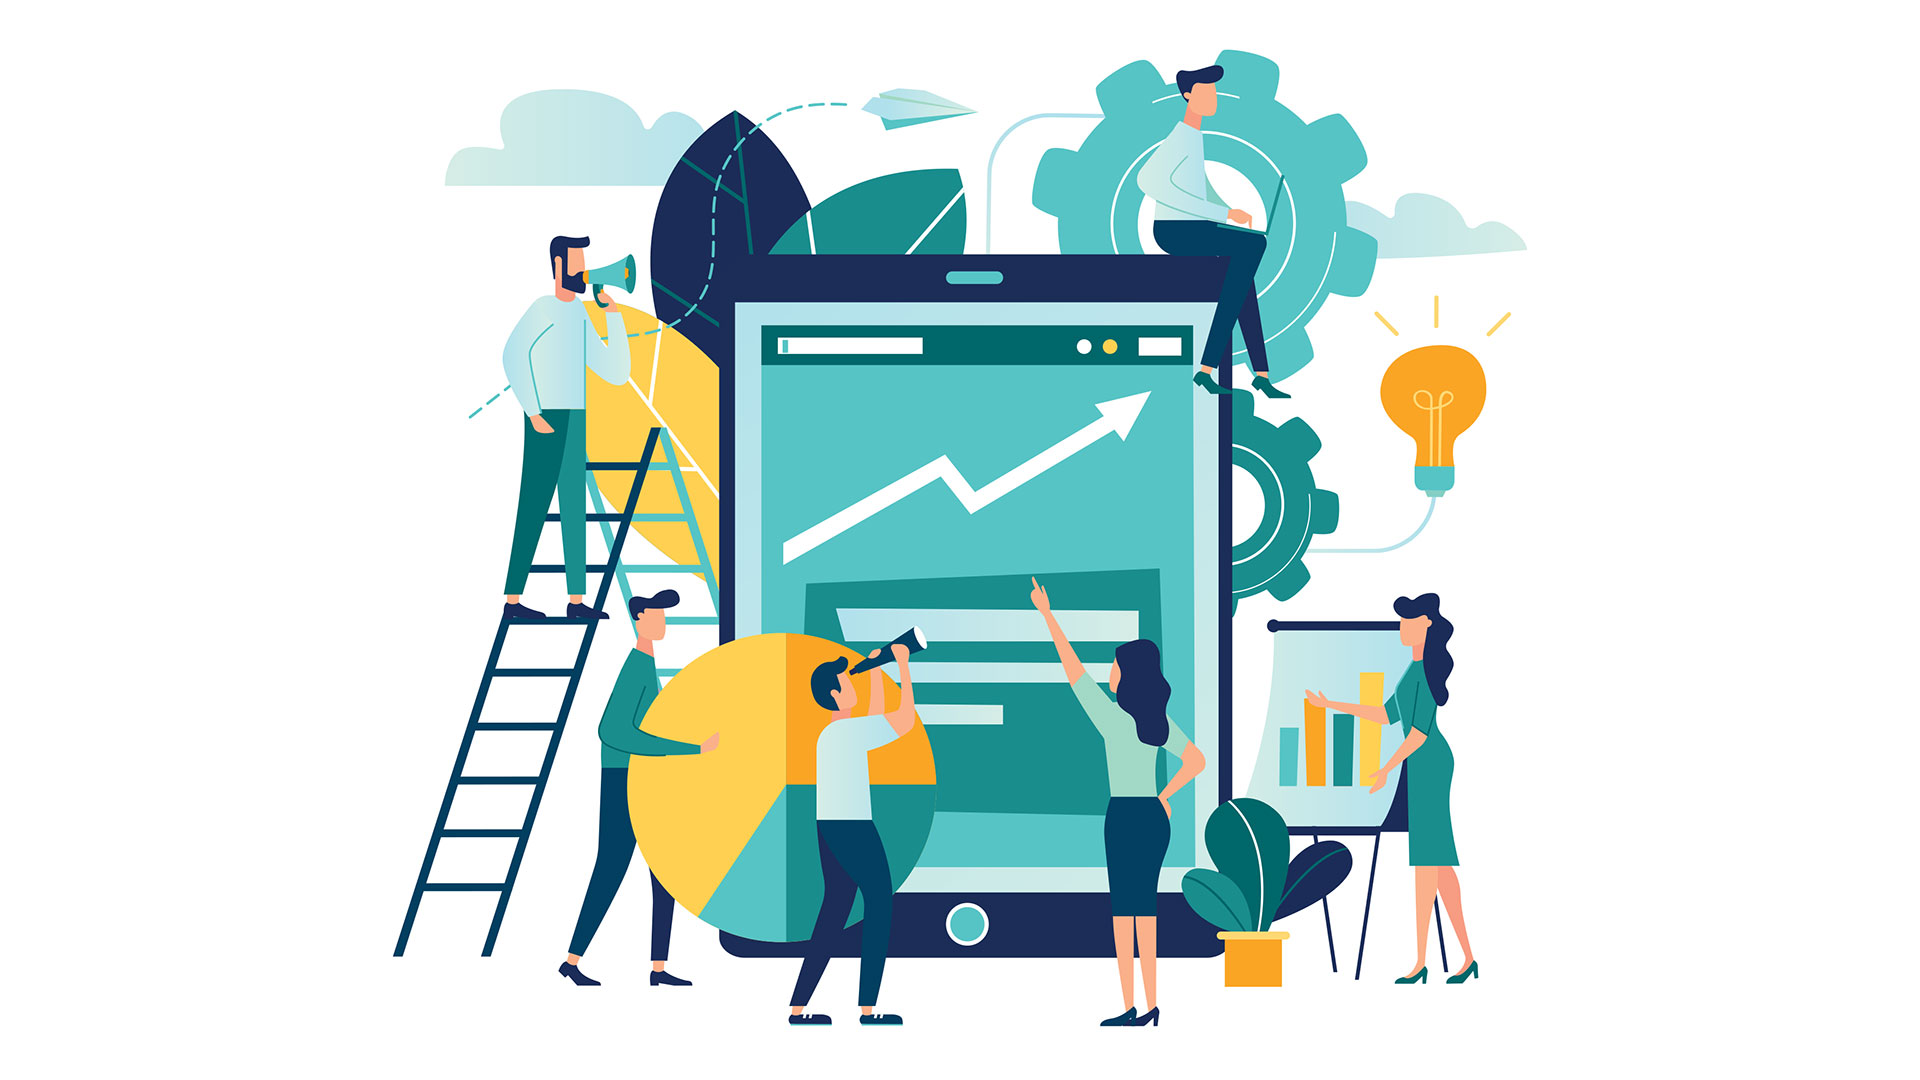 How to Make More Money With Display Ads by Adjusting Your Content Strategy